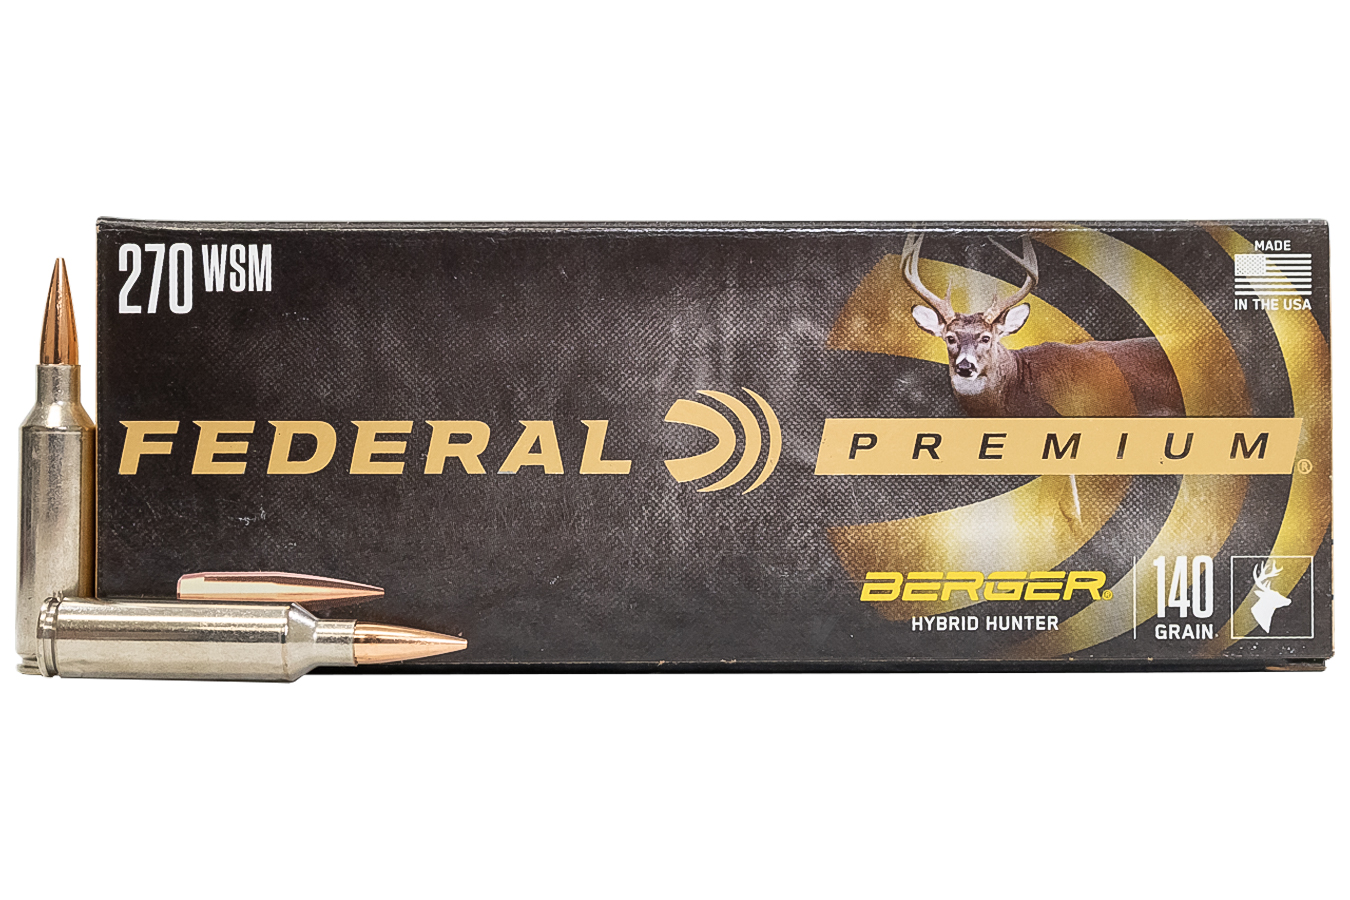 270 WSM 140 GR BERGER HYBRID HUNTER